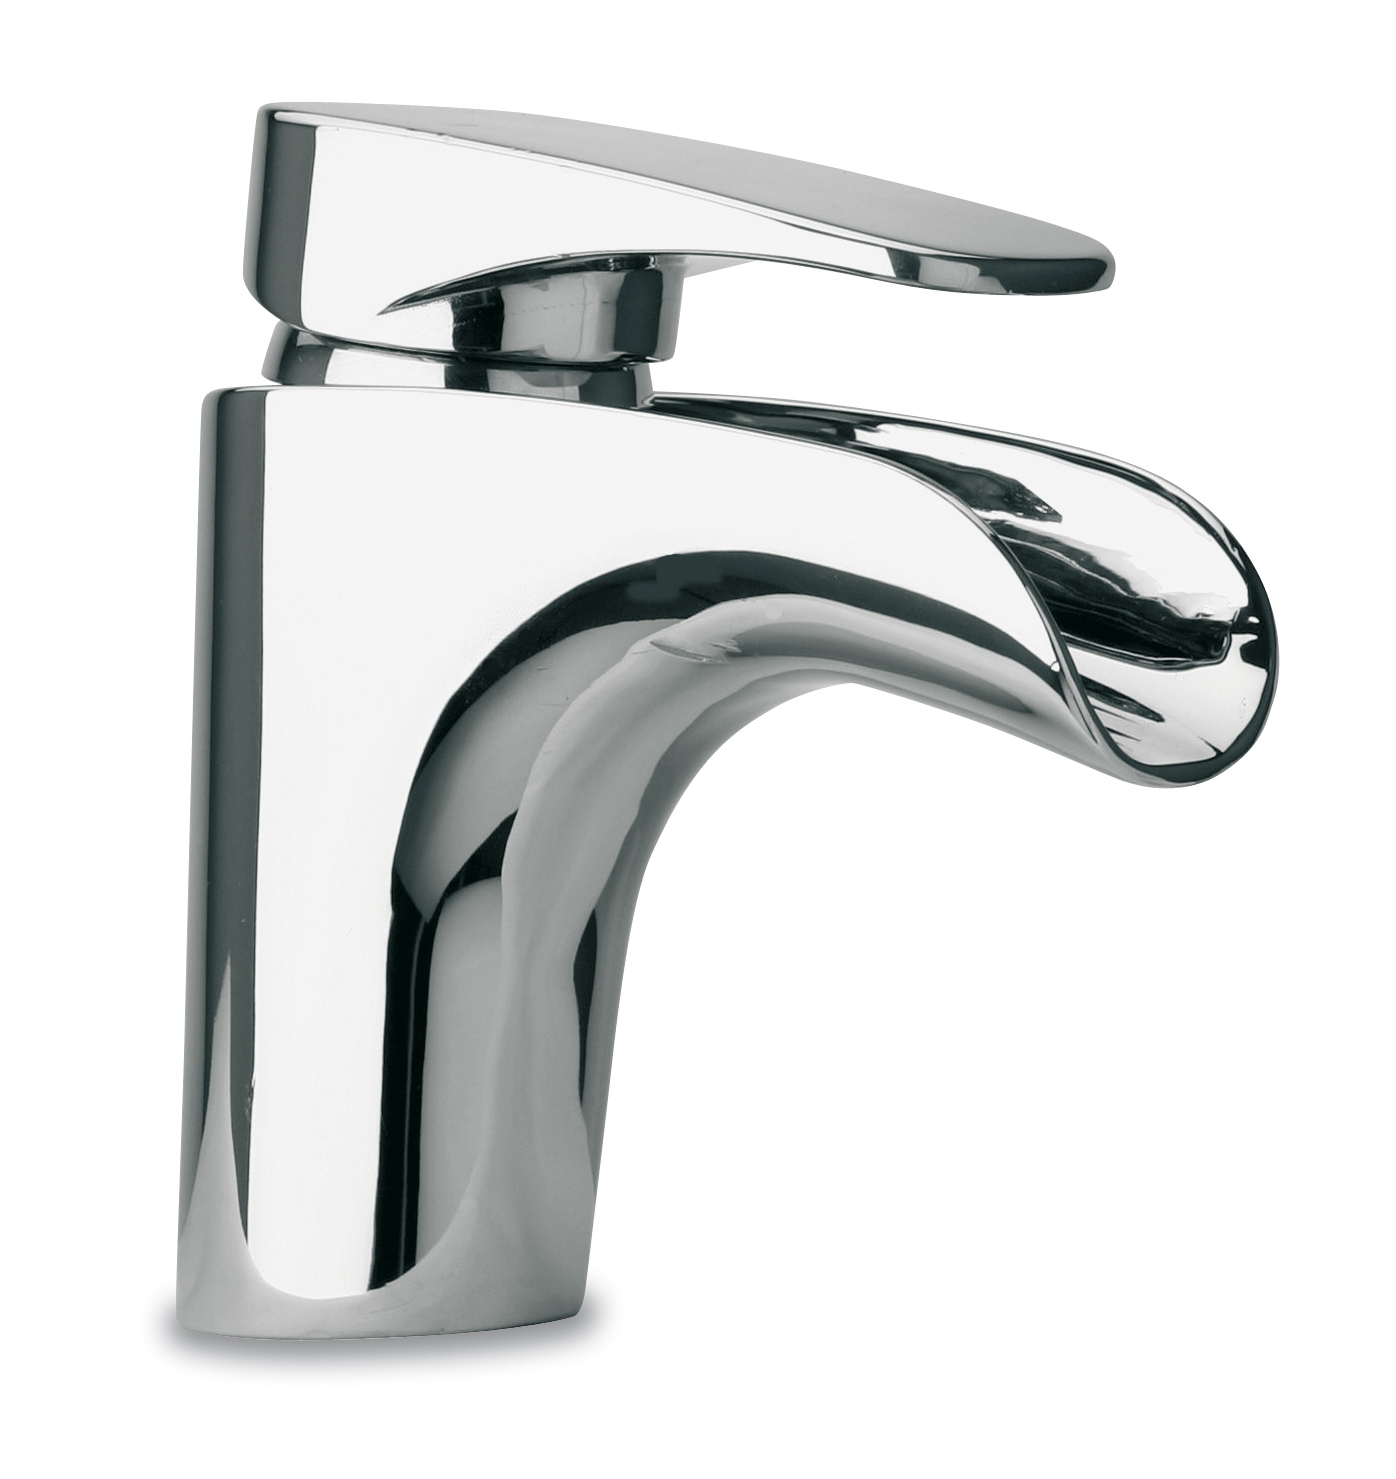 Ideas, la toscana bathroom faucets la toscana bathroom faucets novello latoscana 1396 x 1479  .